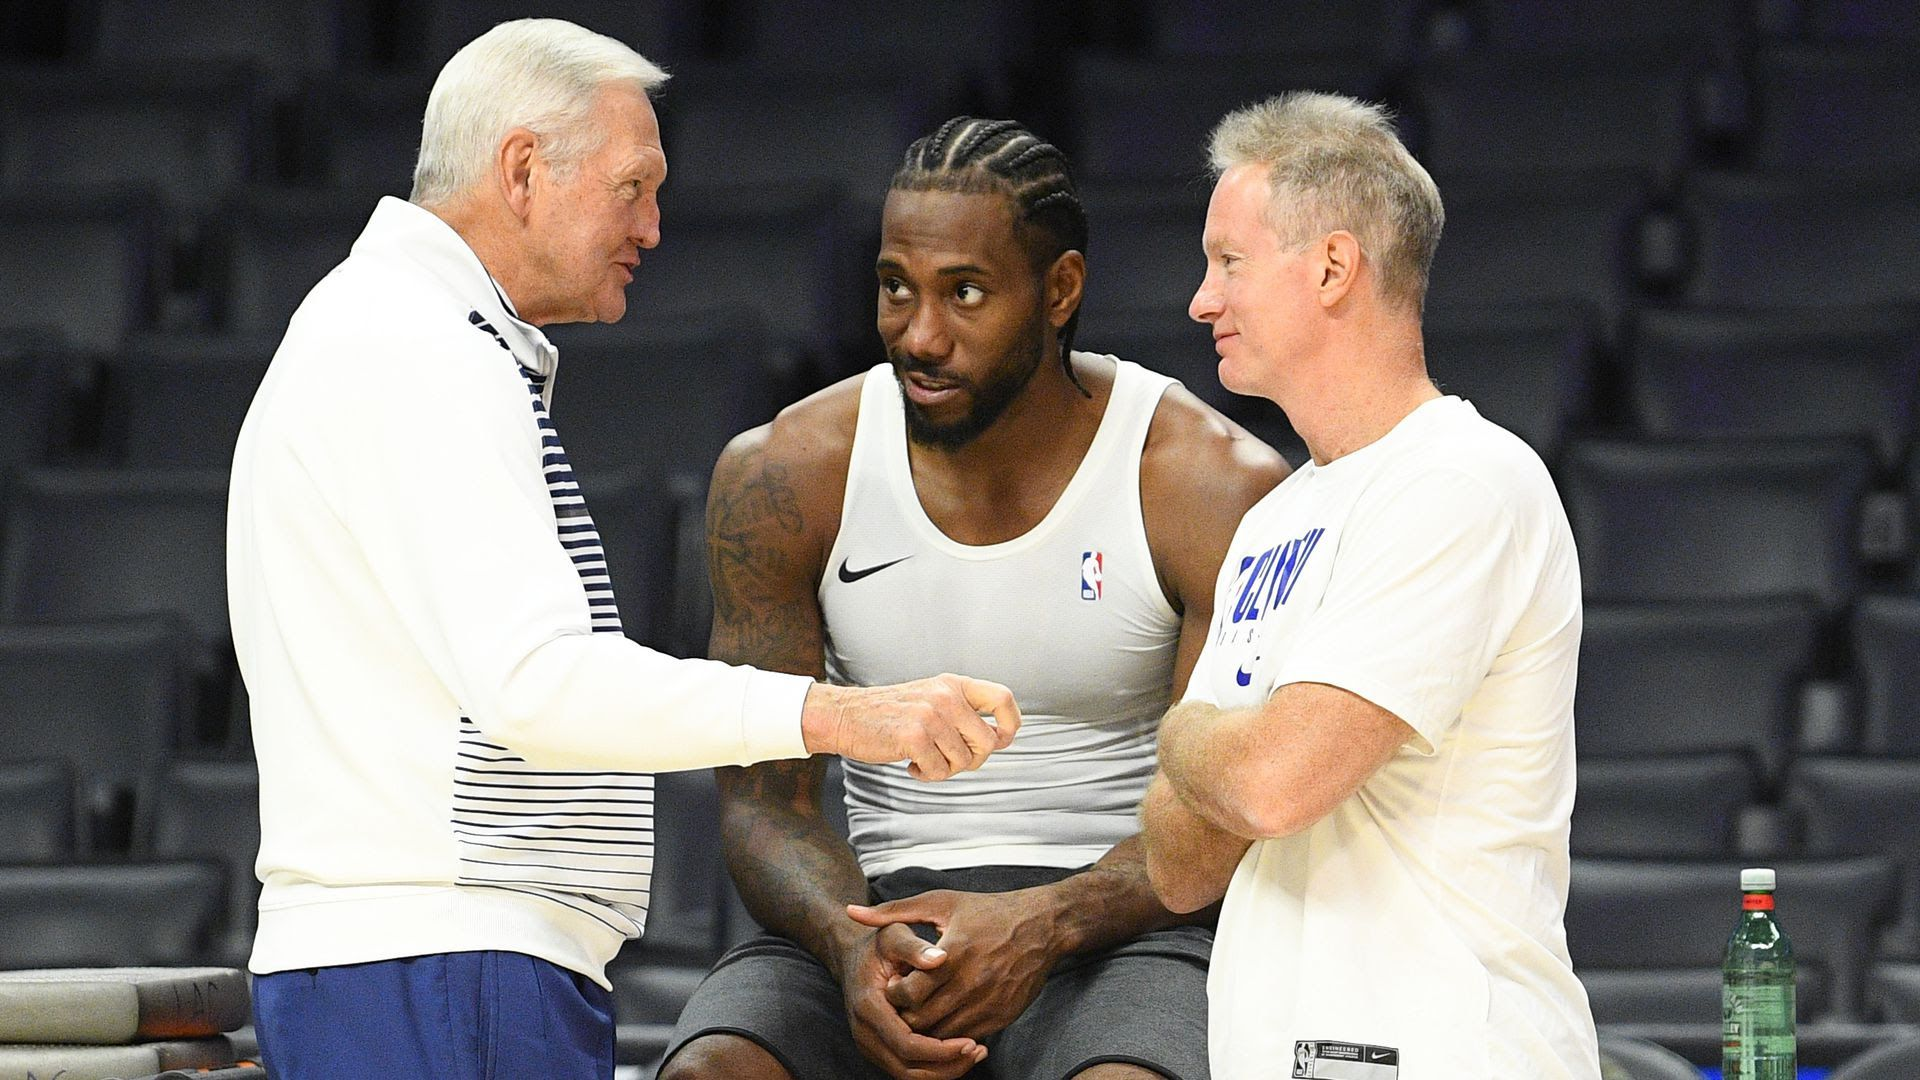 LA Clippers player Kawhi Leonard speaking with management